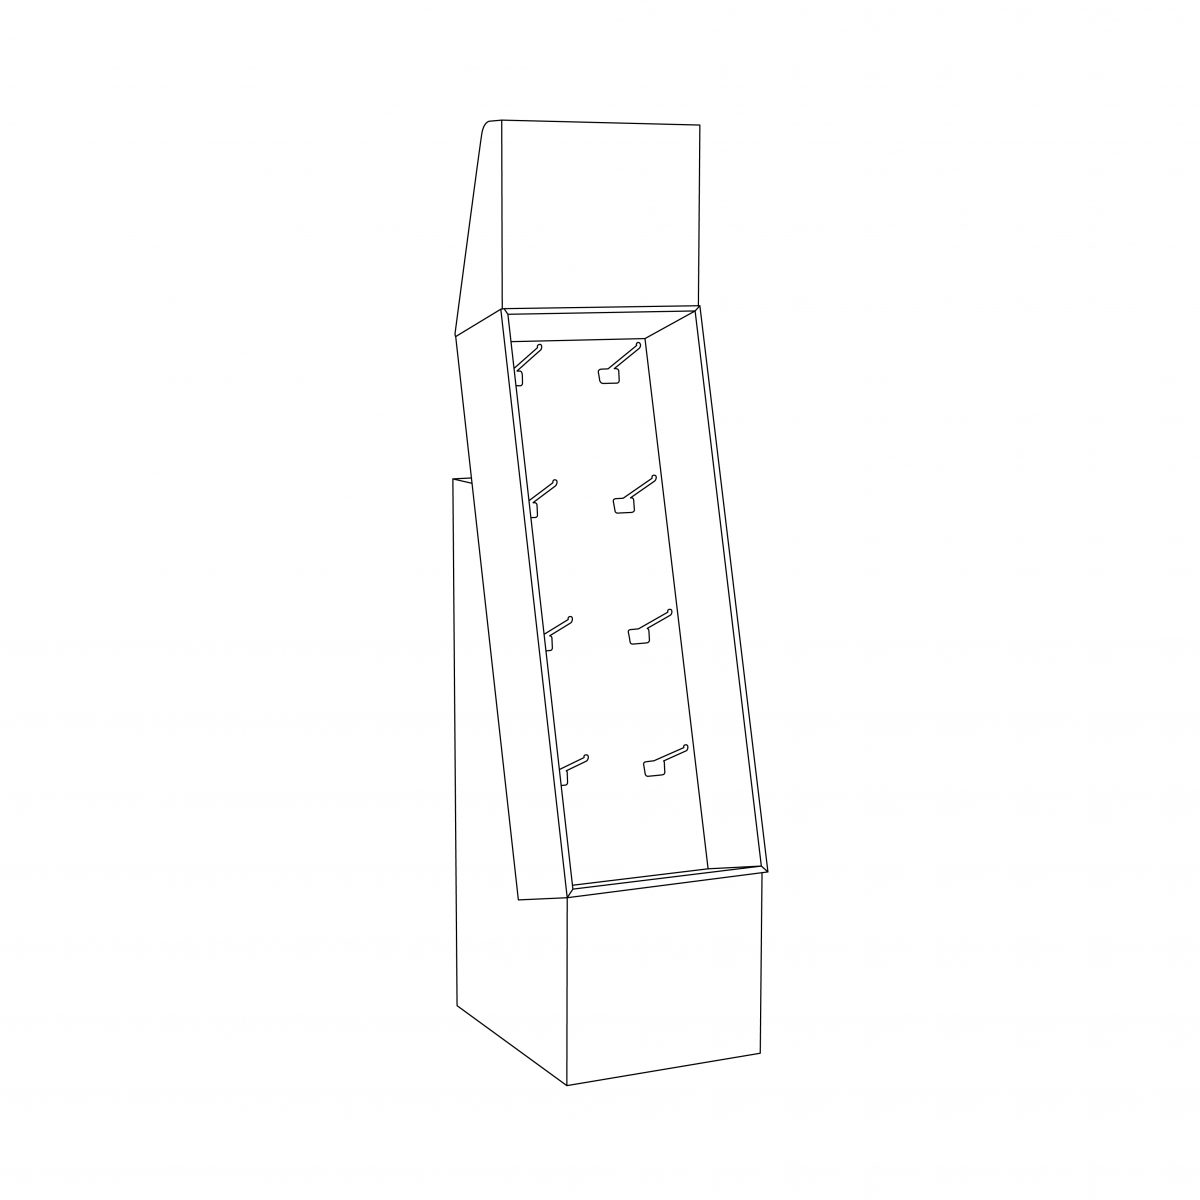 Cardboard floor peg display with header, placed on a base - outline